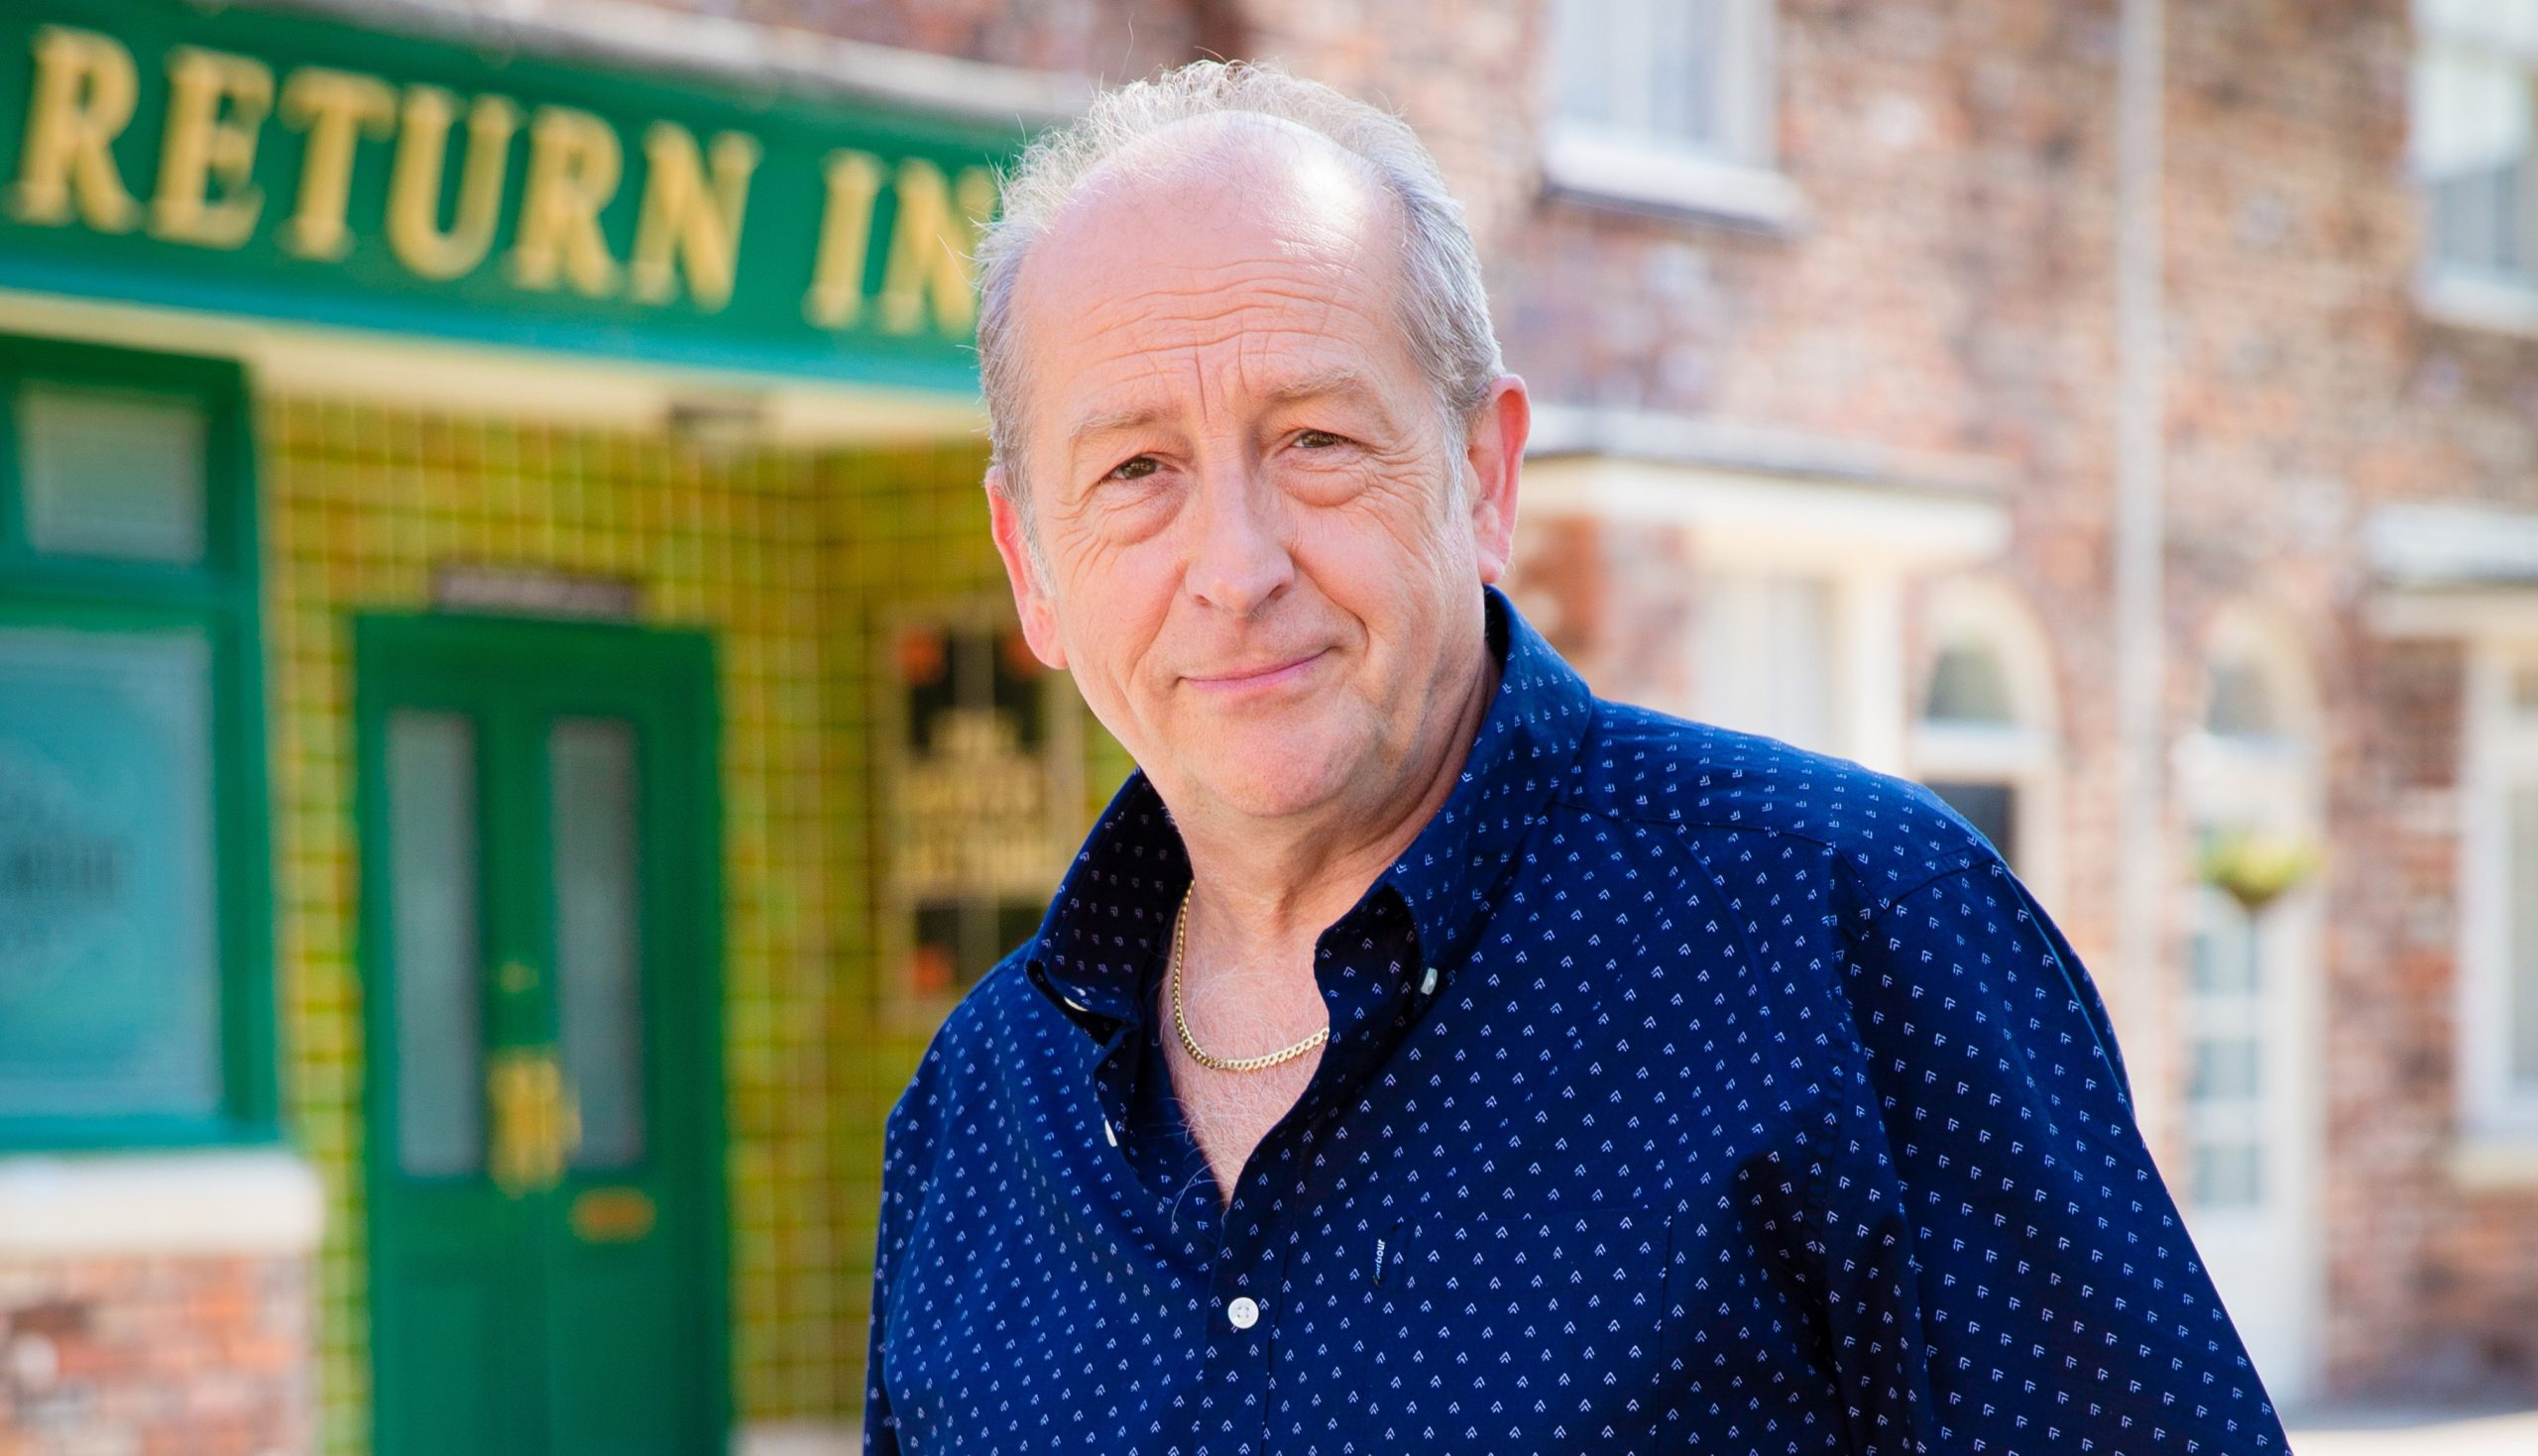 When will Geoff be exposed in Coronation Street? Fans want him to get his comeuppance